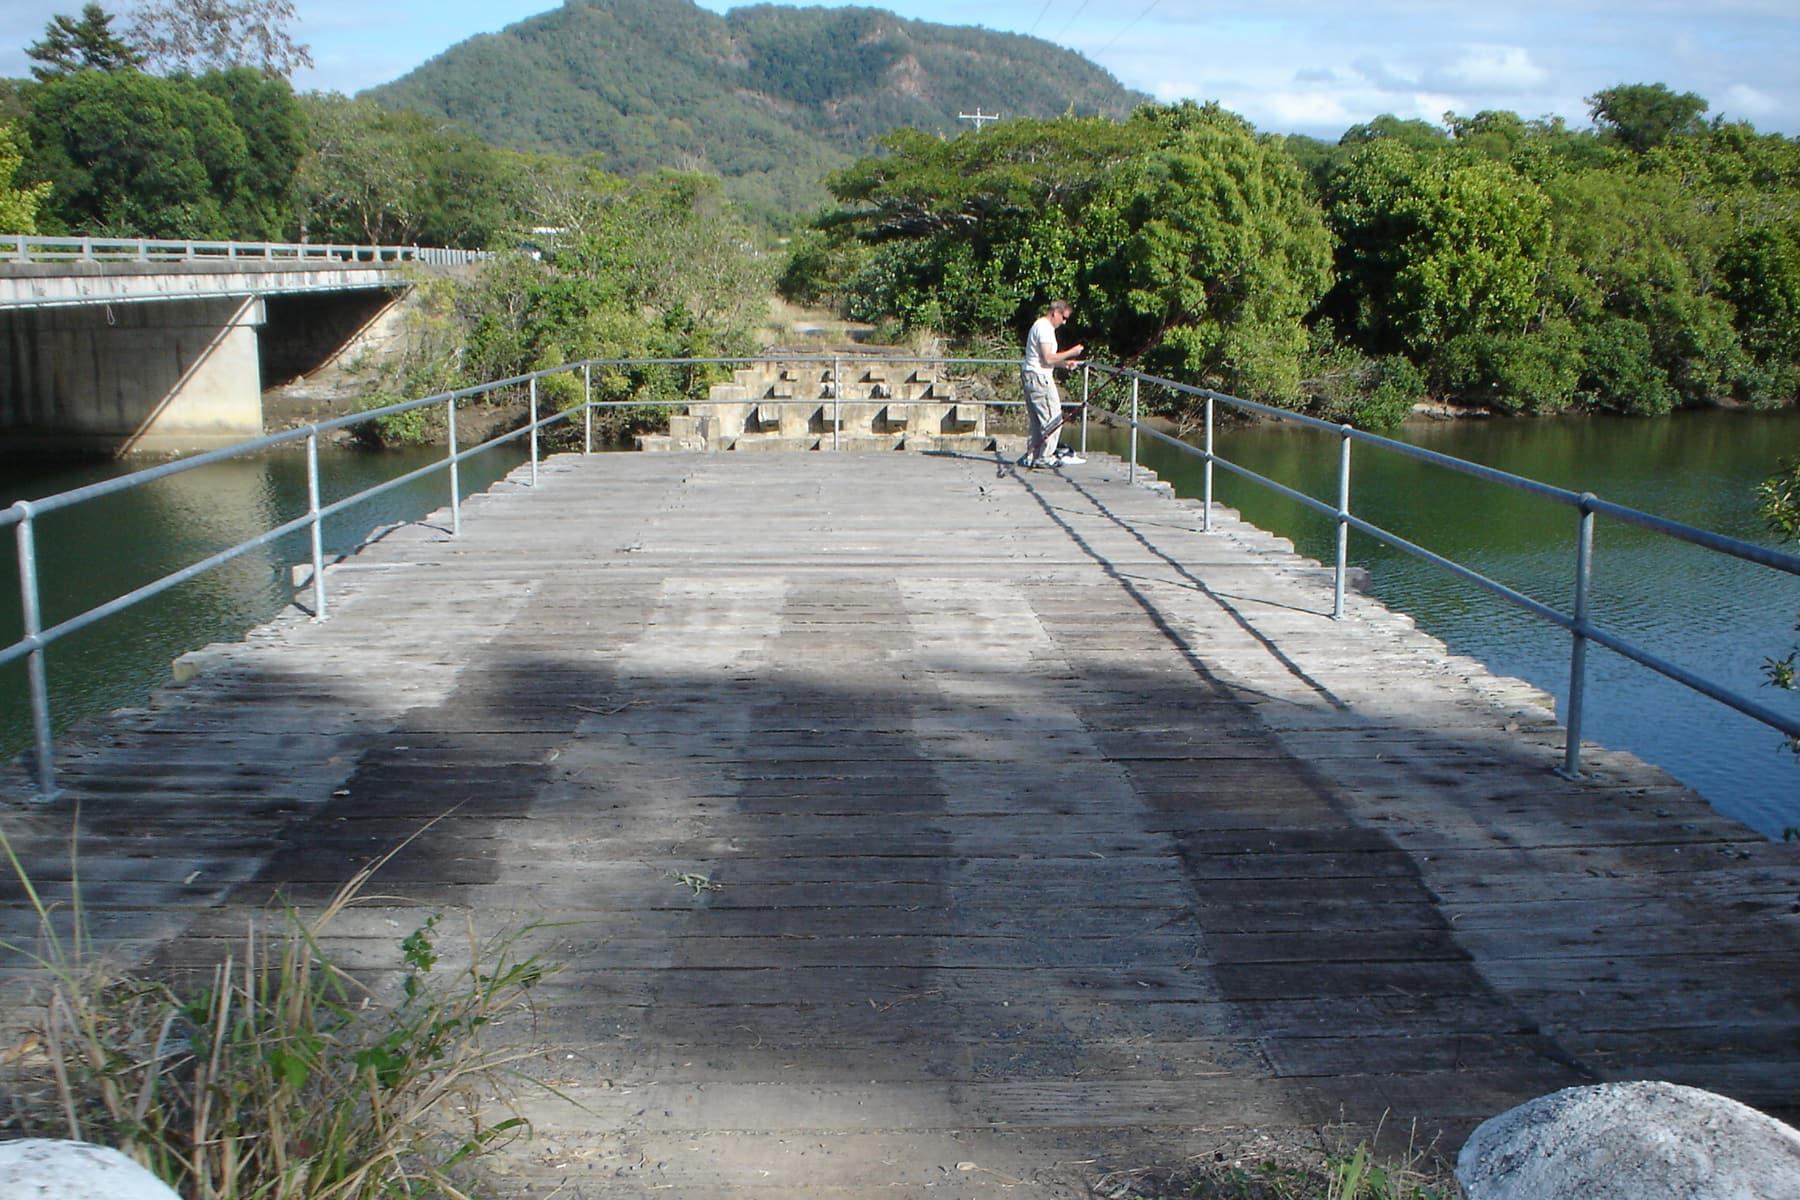 Mowbray fishing platform hooked in $5.7m project